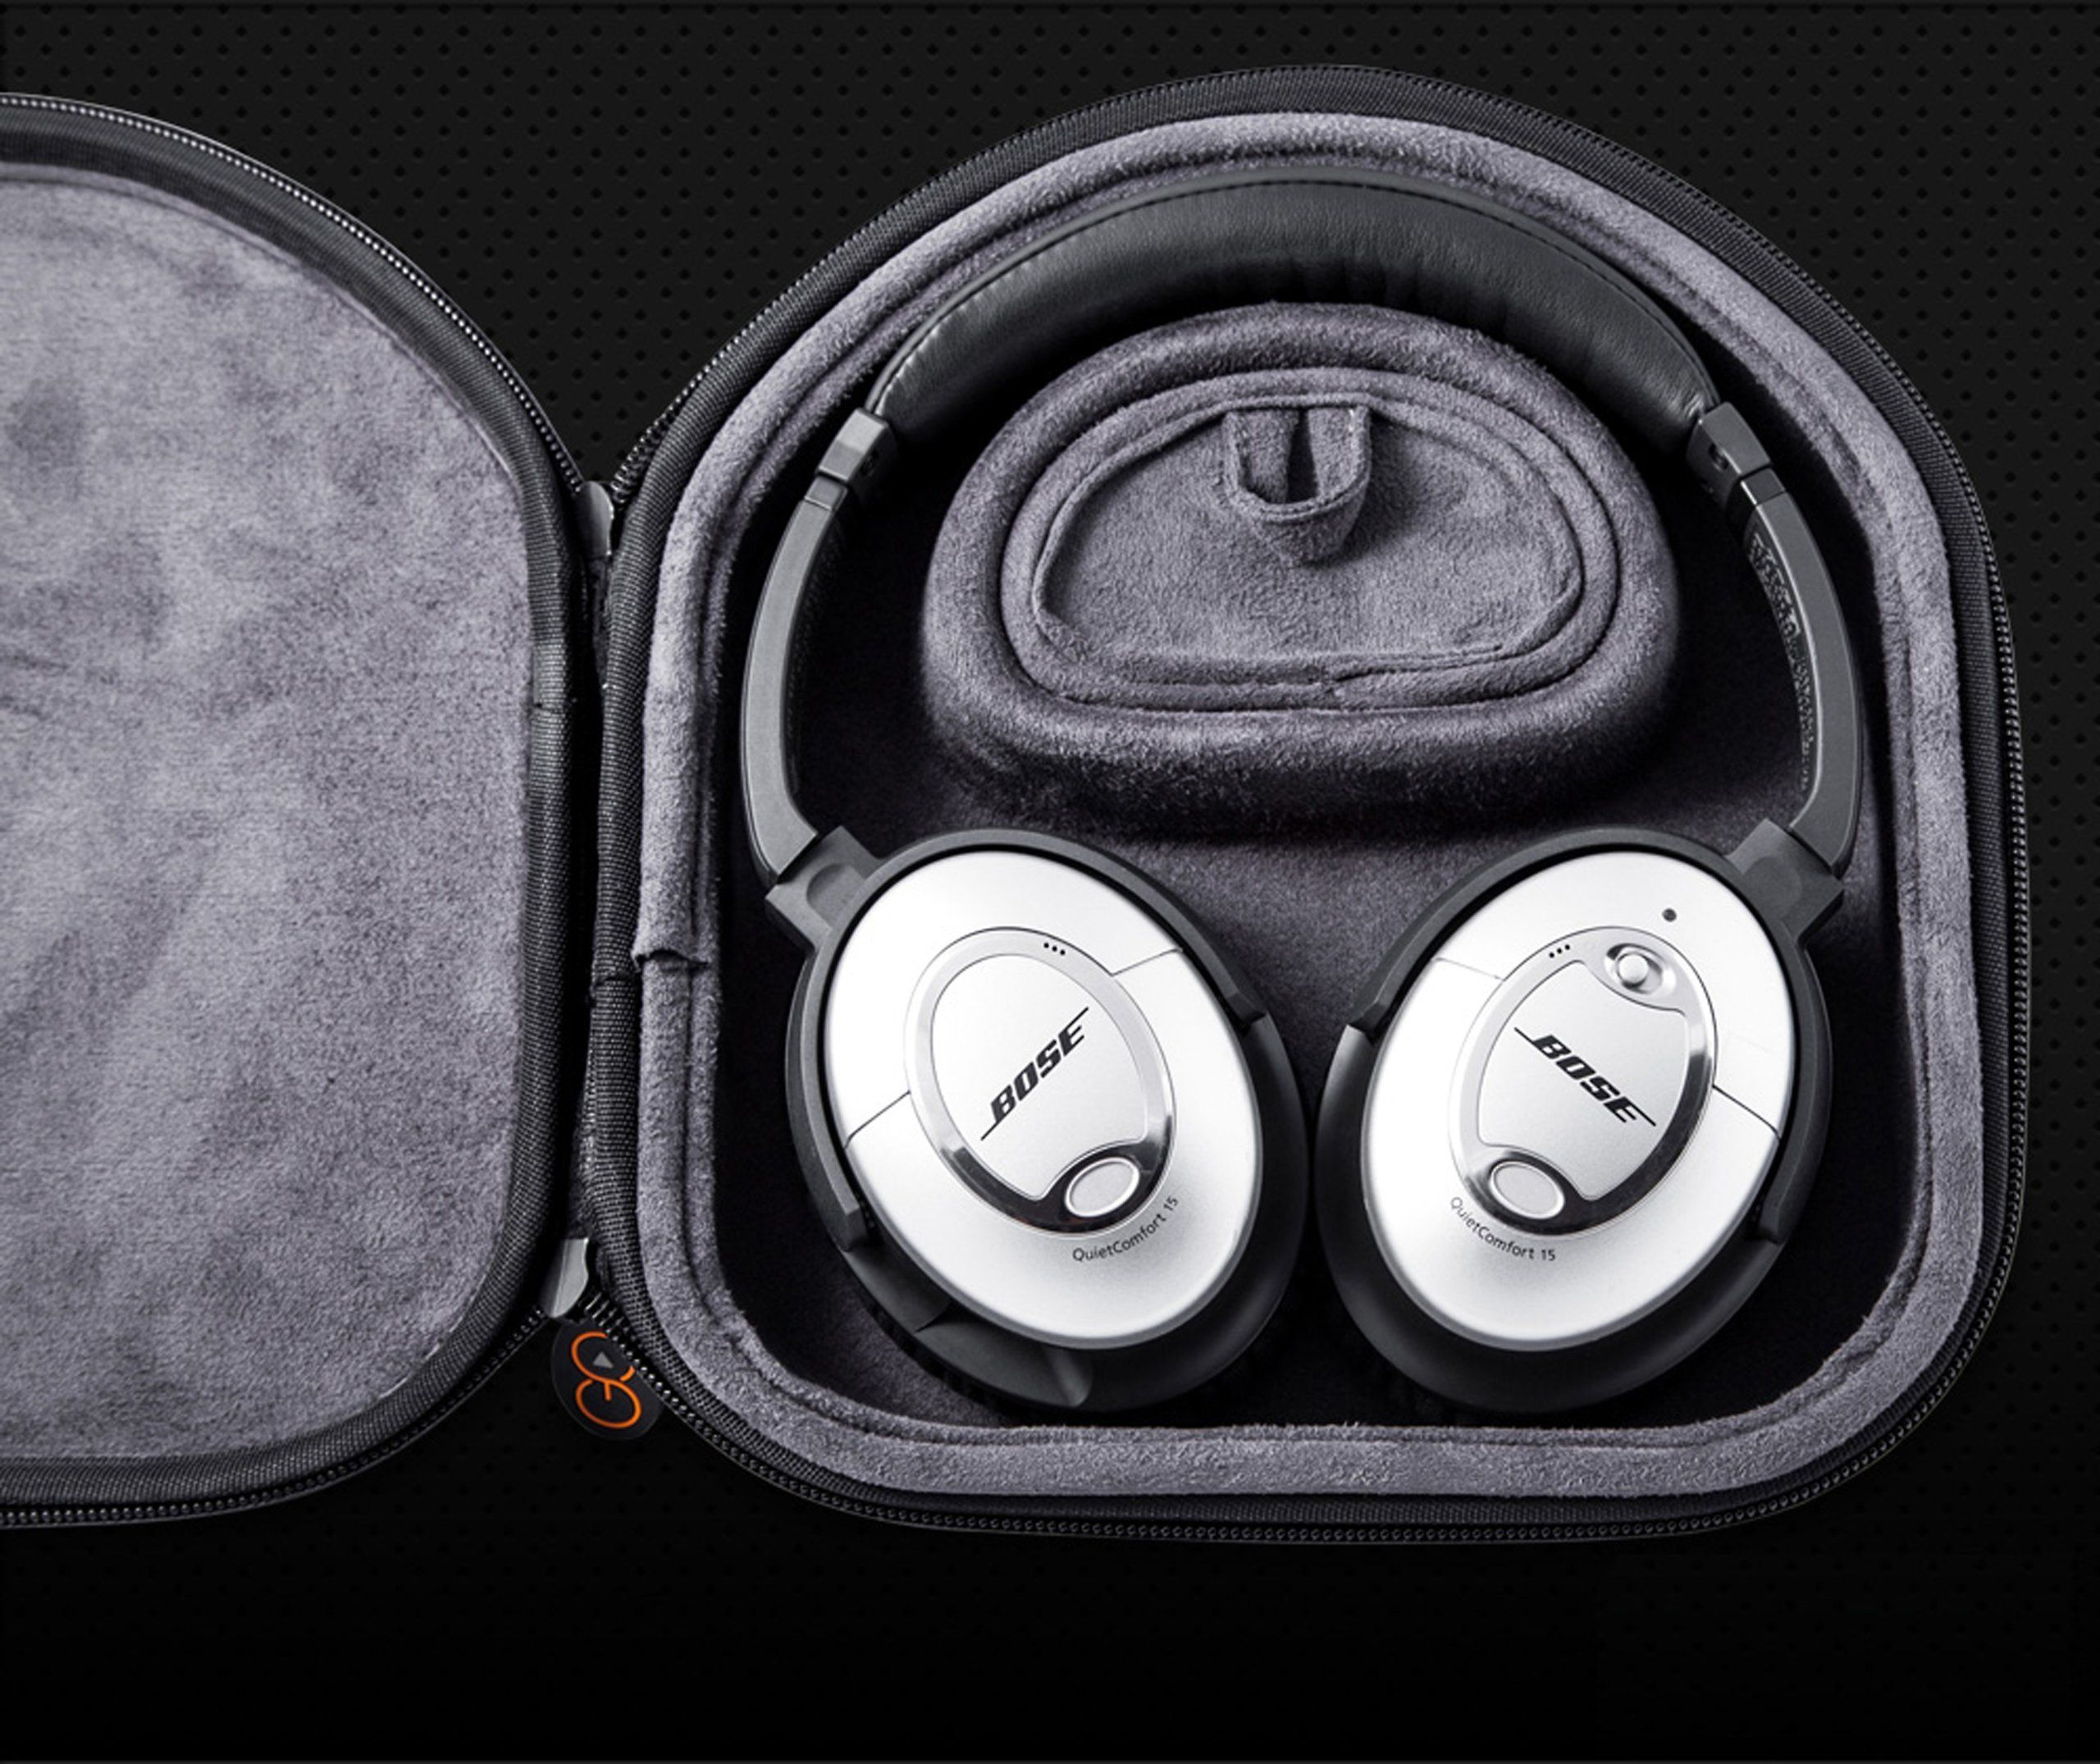 lifetime quietcomfort cancelling bose comfort headphones comforter travel quiet view product noise